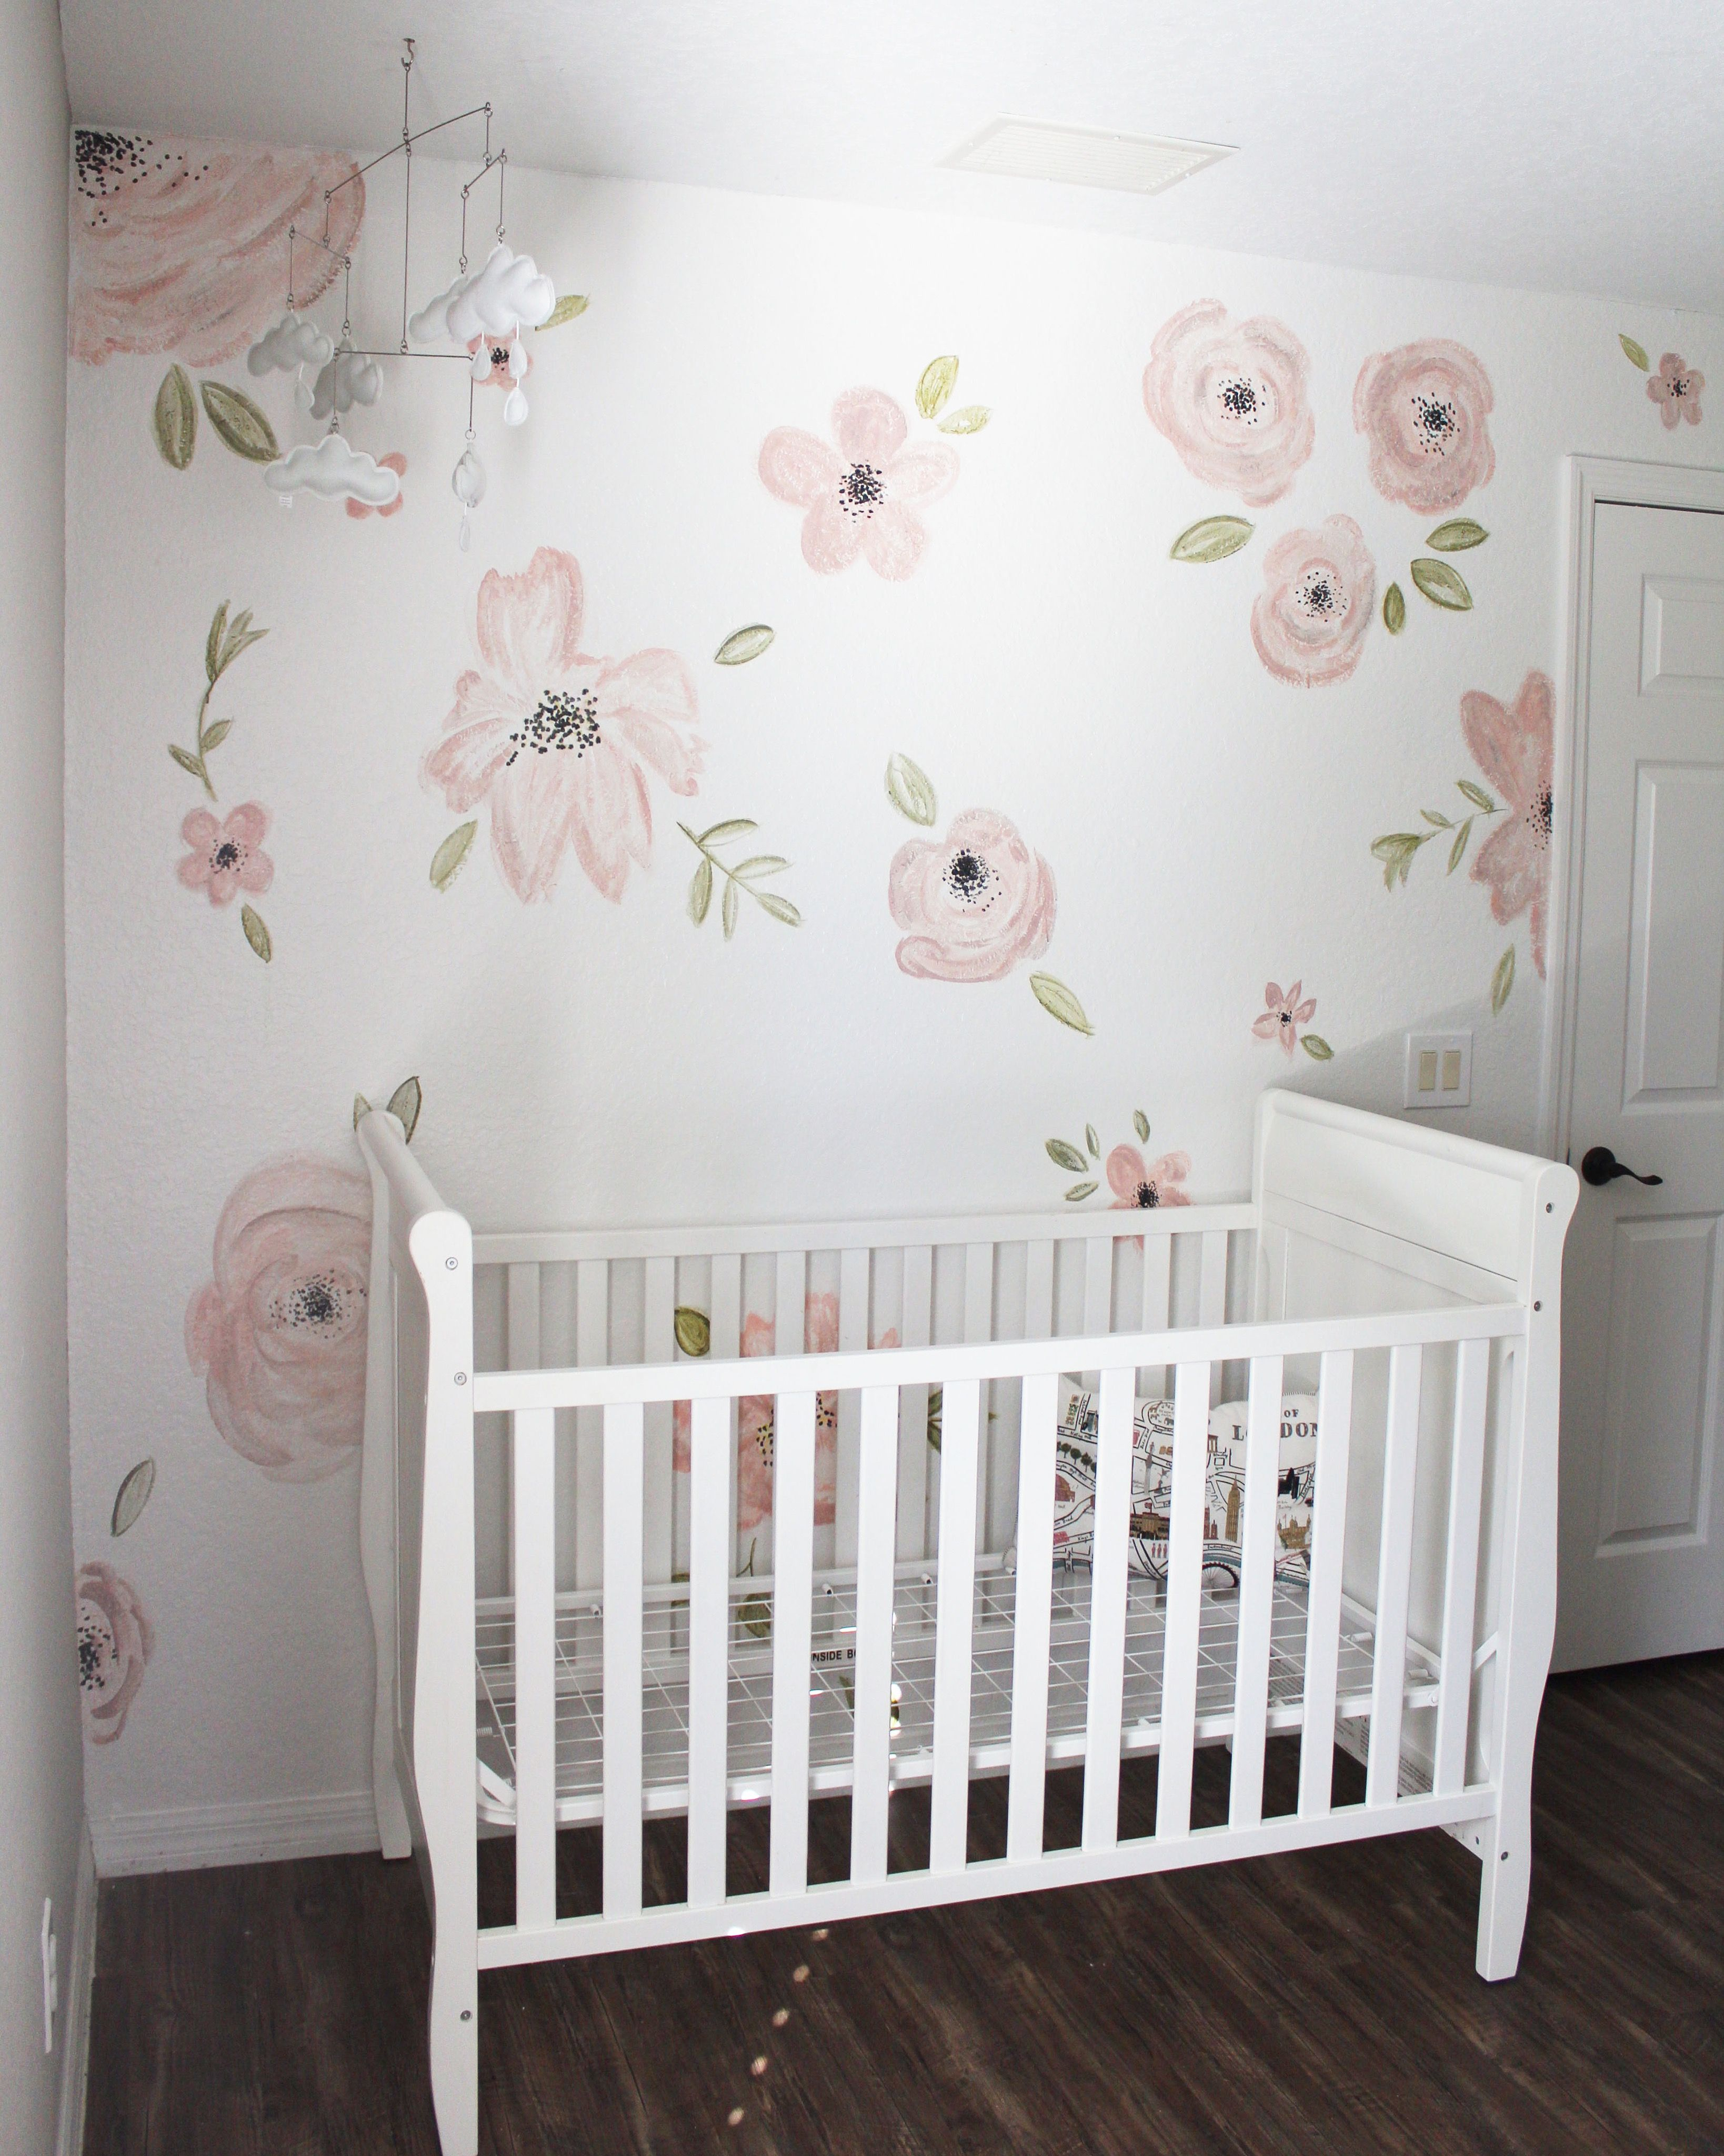 Hand painted accent wall for nursery! Floral nursery, pink